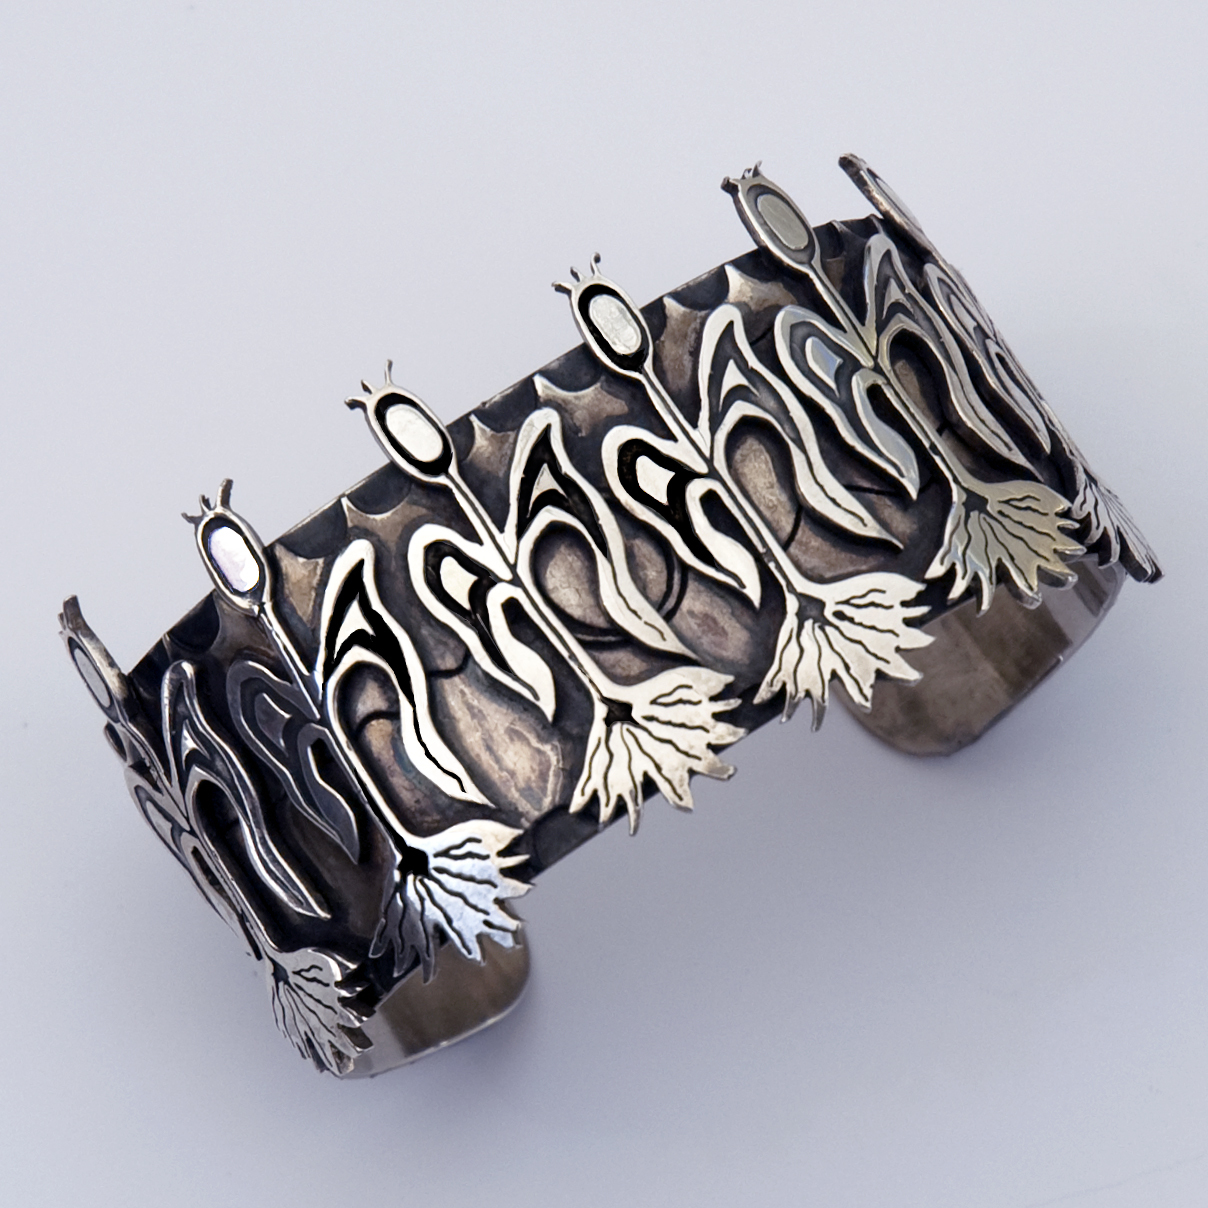 Anishinaabe Mandaamin silver bracelet designed and handcrafted by jeweler Zhaawano